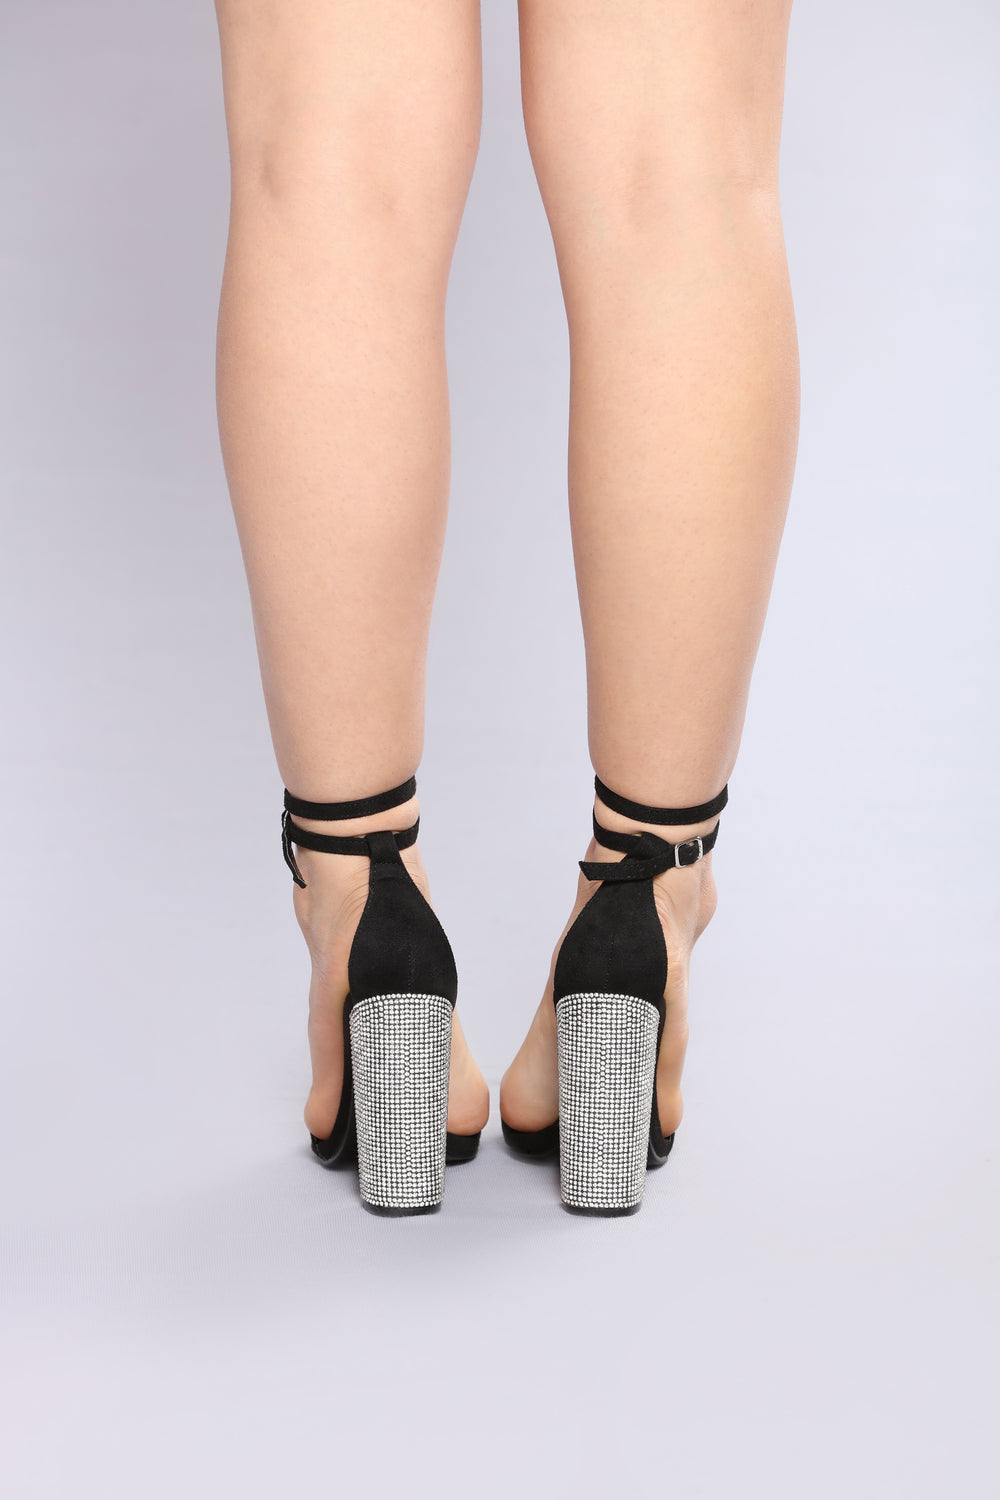 Spread The Sparkle Heel - Black